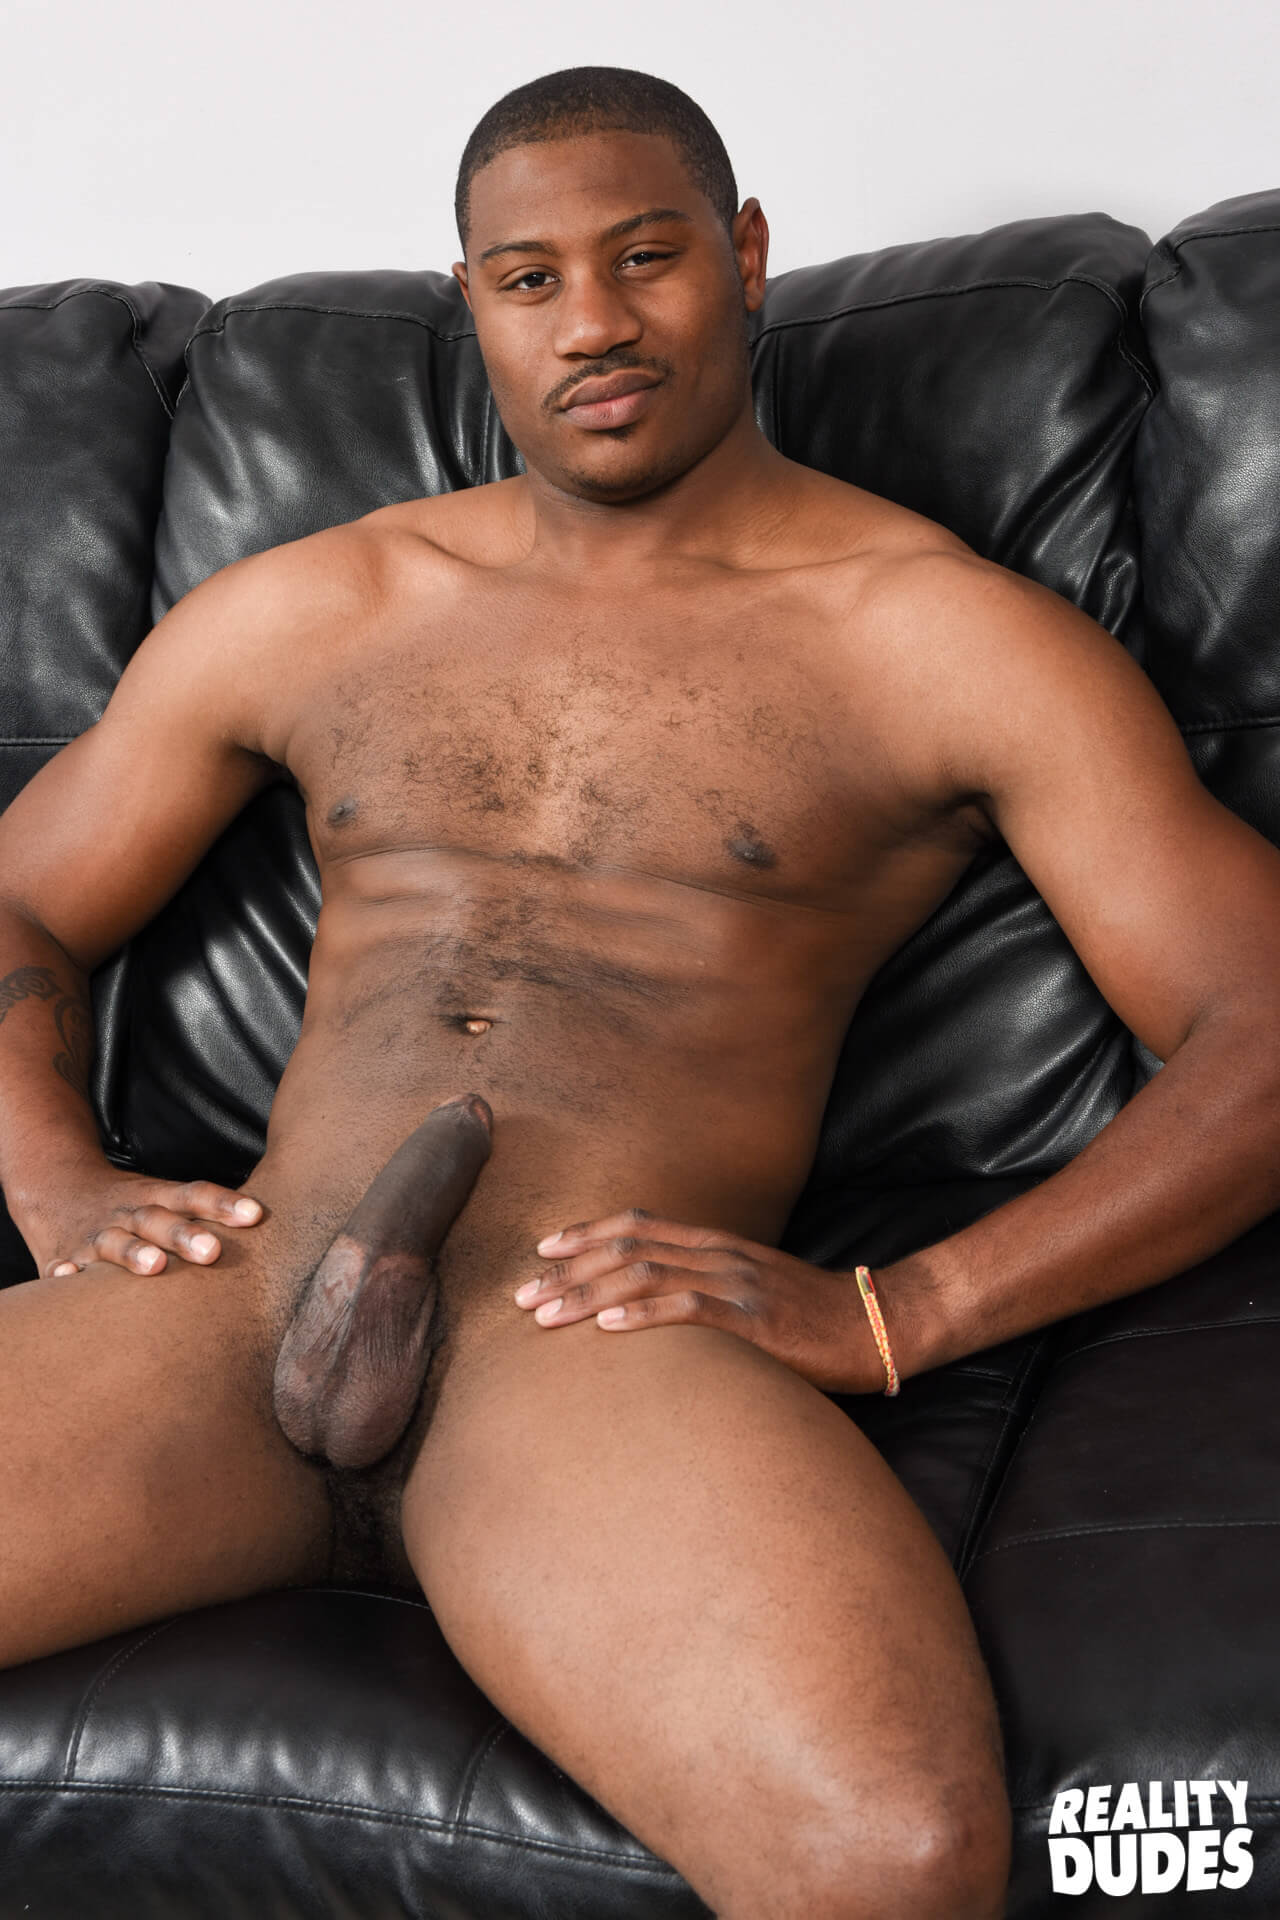 reality dudes reality thugs adonis couverture kylan gay porn blog image 23